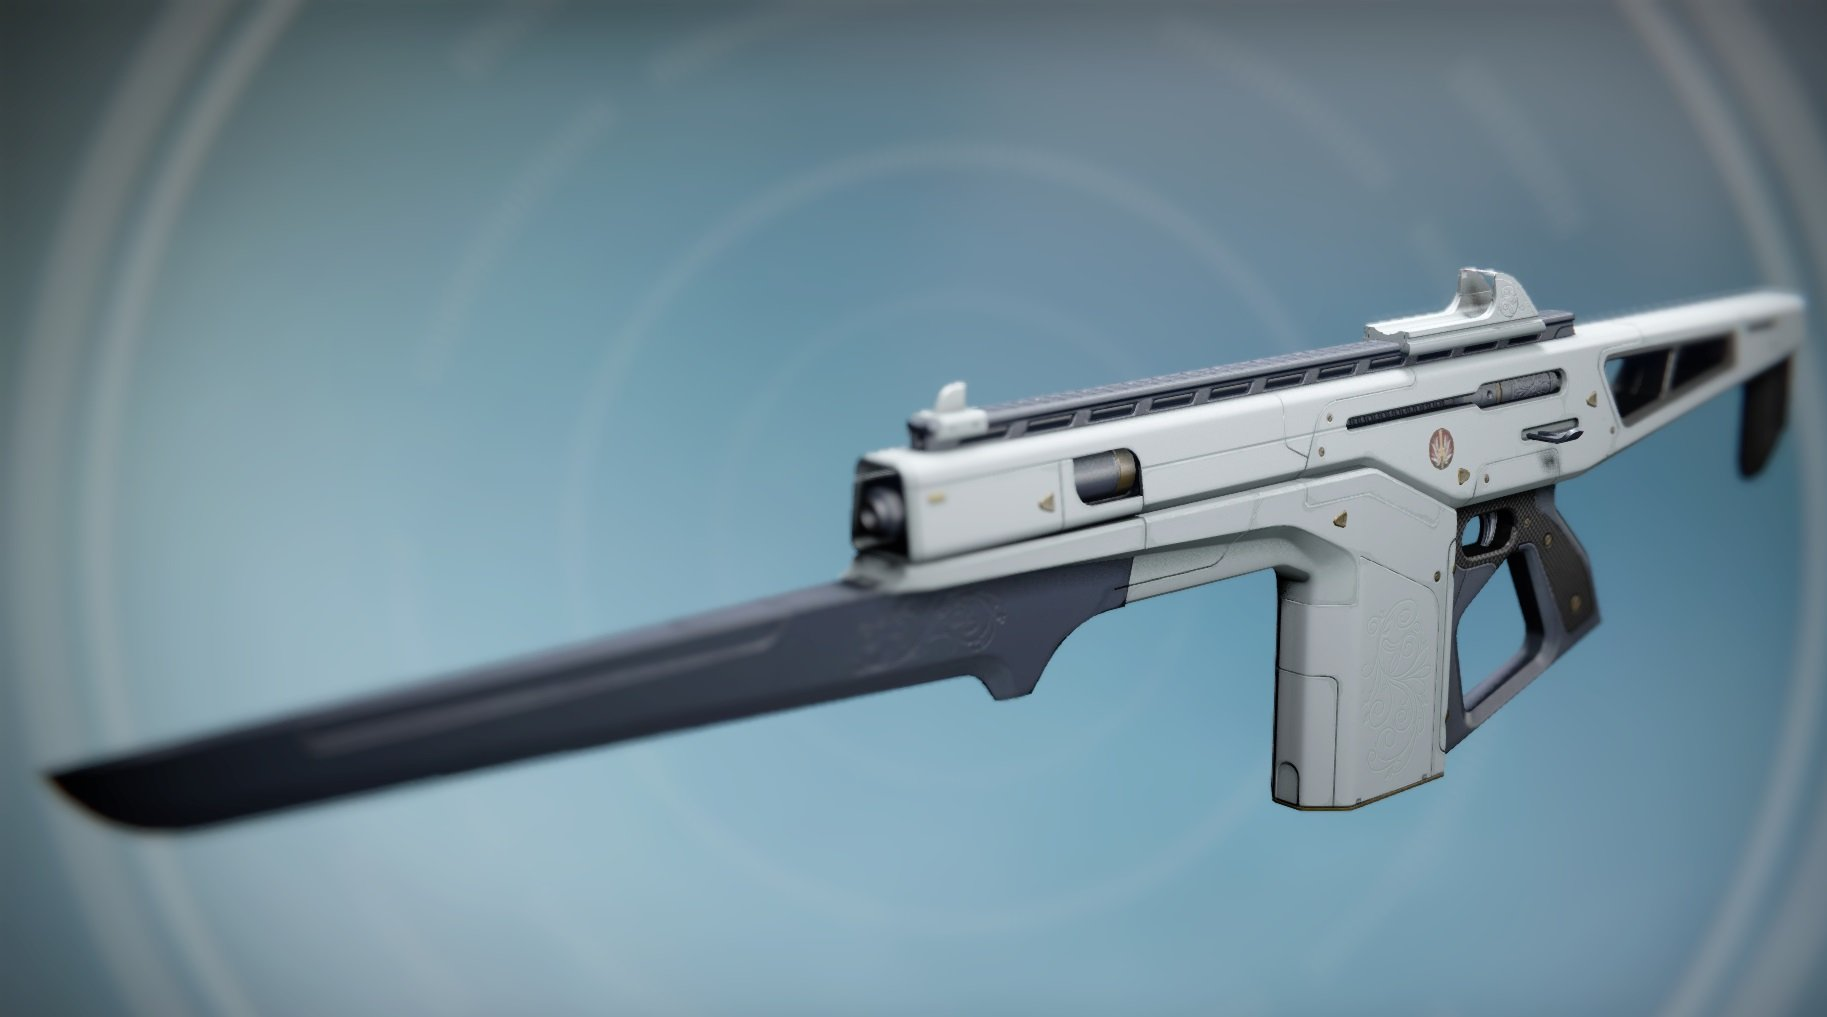 What Xur is selling in Destiny 2 - January 24, 2020